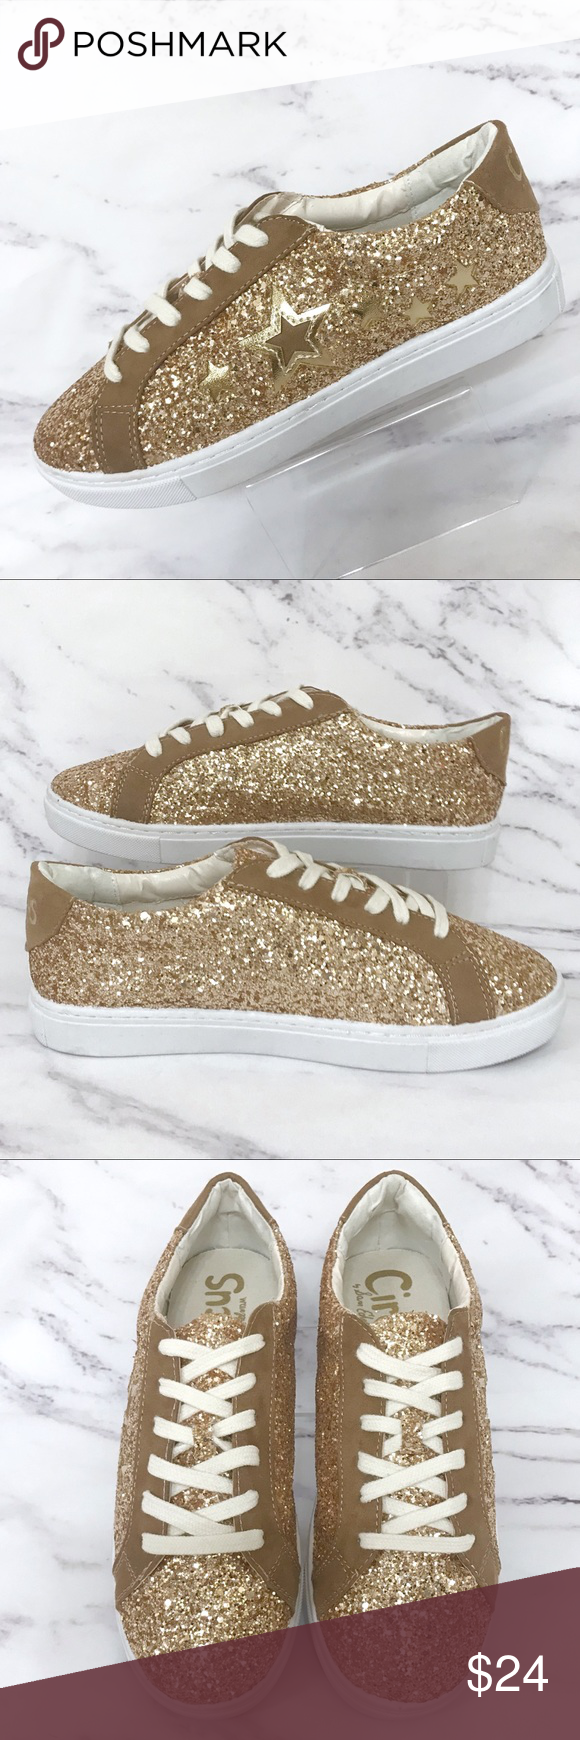 Circus by Sam Edelman Sneakers *GOLD